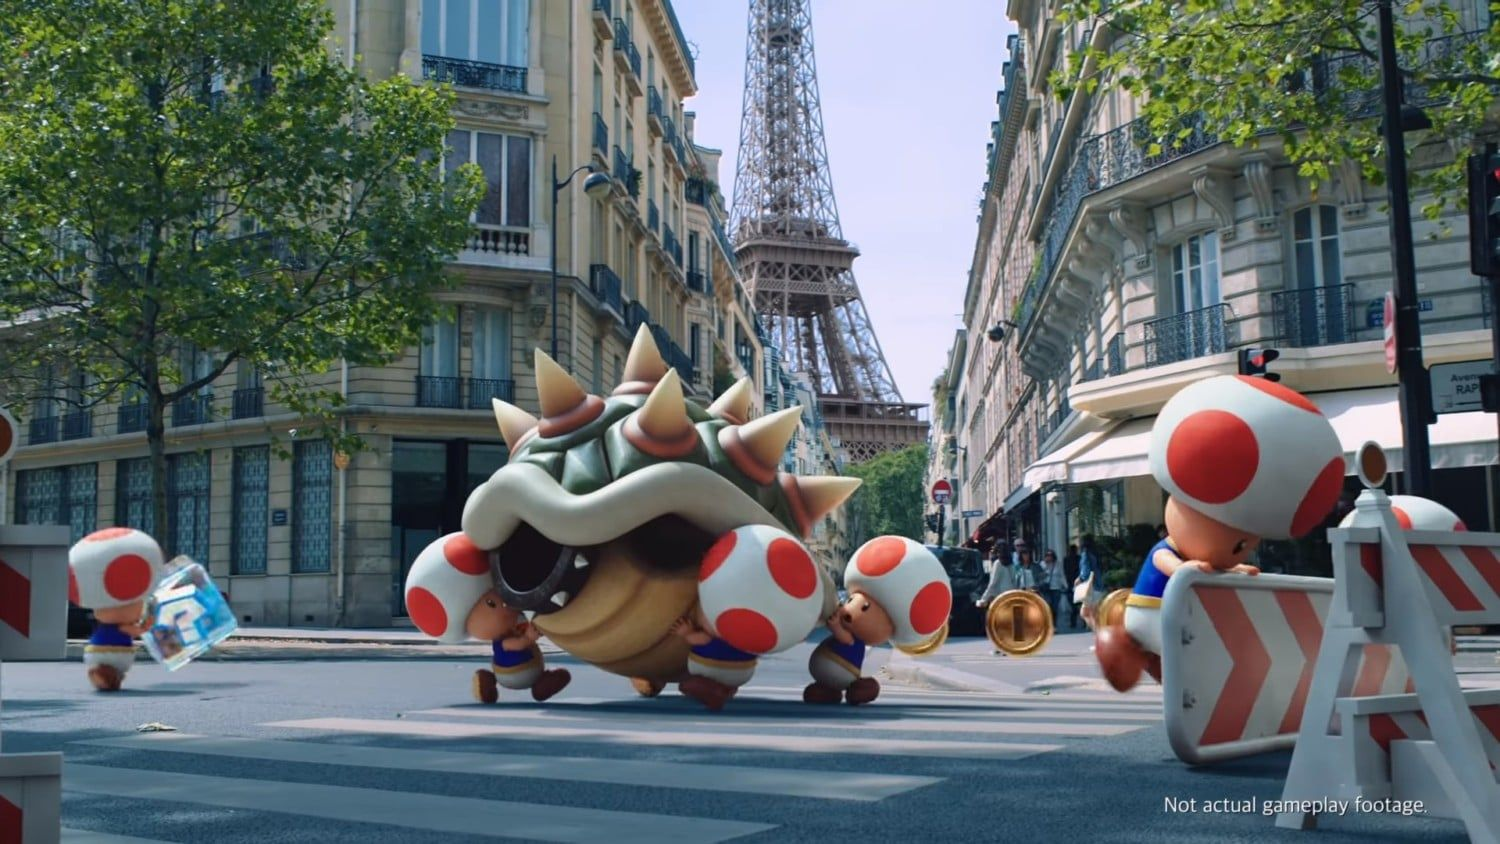 Mario Kart Tour Next Construction Trailer Toads In Paris General News Nintendoreporters Mario Kart Mario Mario Kart Characters